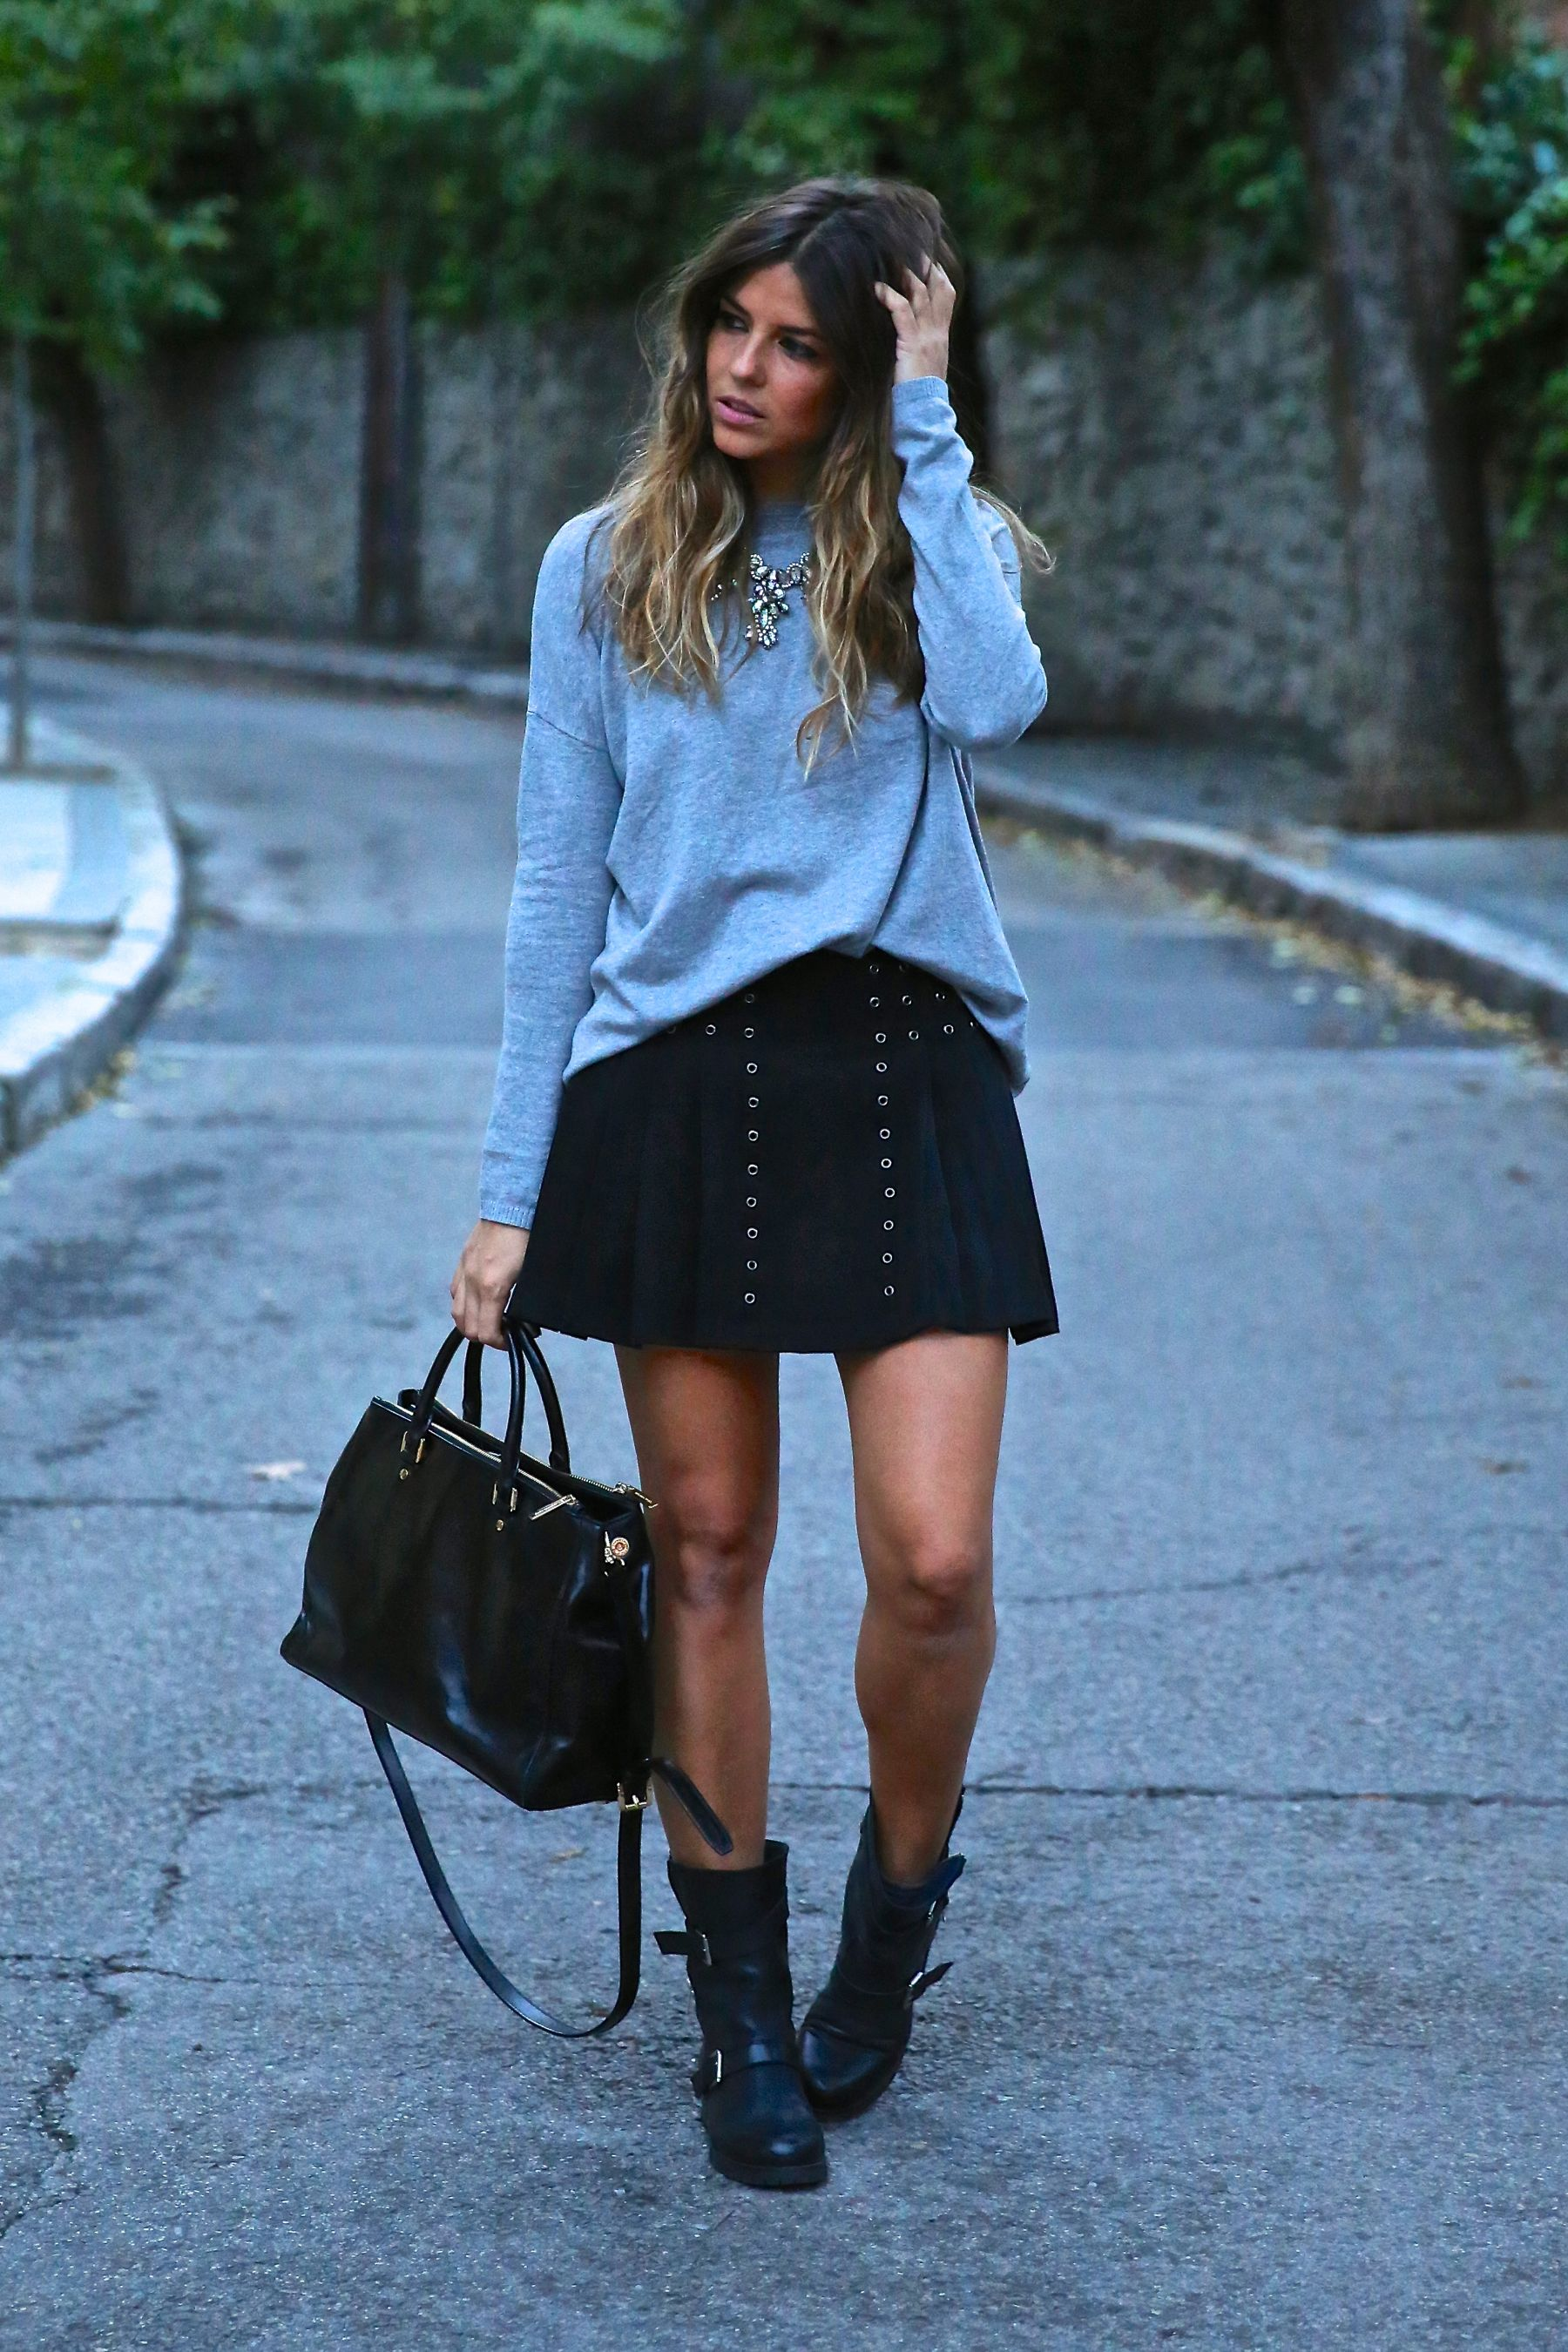 trendy_taste-look-outfit-street_style-ootd-blog-blogger-fashion_spain-moda_españa-fall_winter-otoño-rocky-botas_moteras-jersey_punto-sweater-11